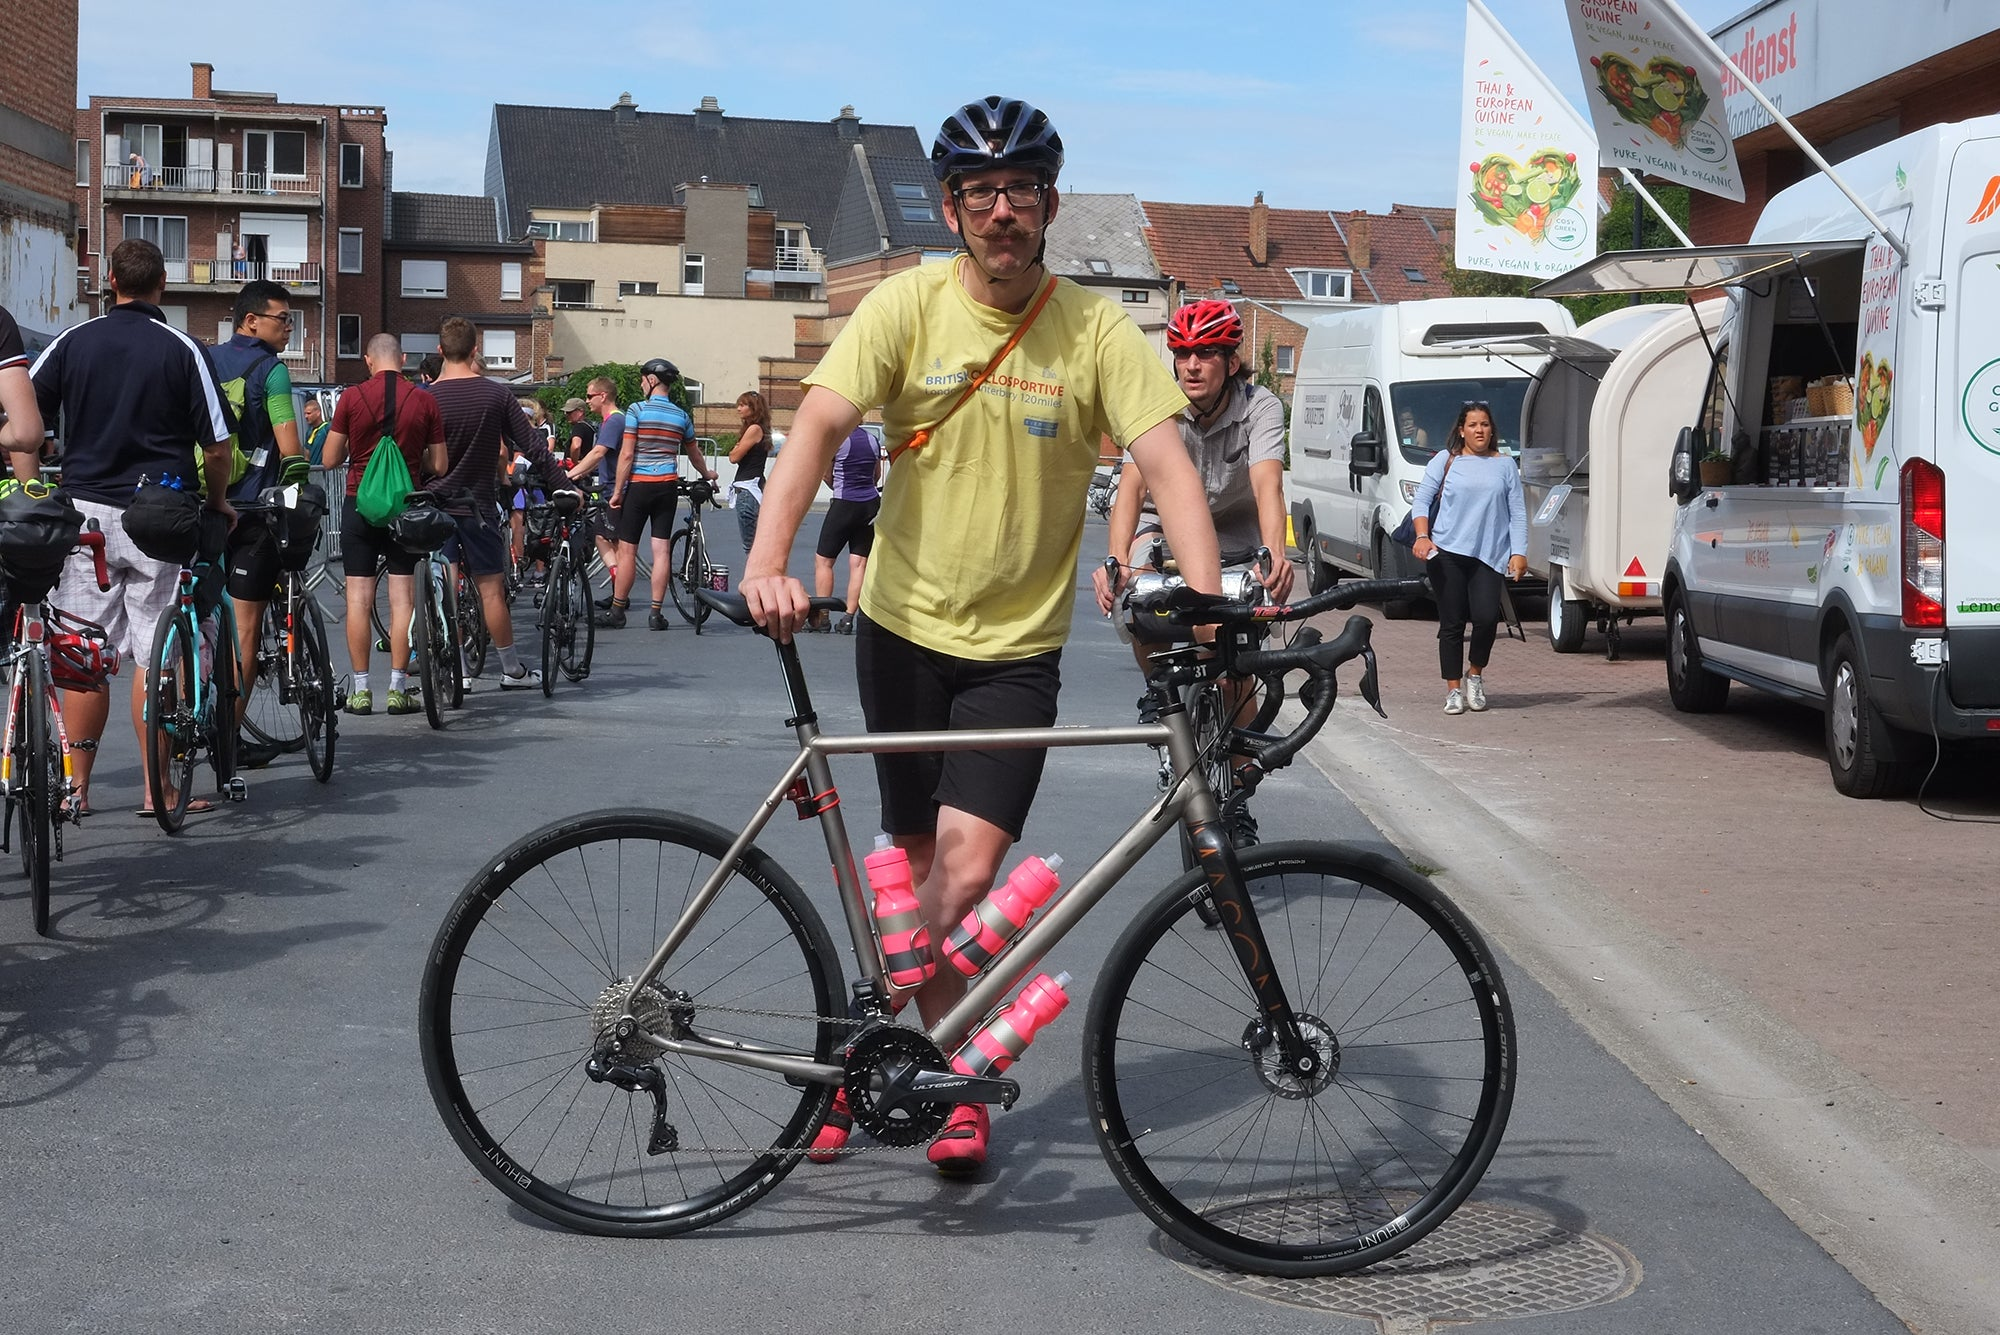 READER'S RIDES: TRANSCONTINENTAL RACE NO.6 SETUPS